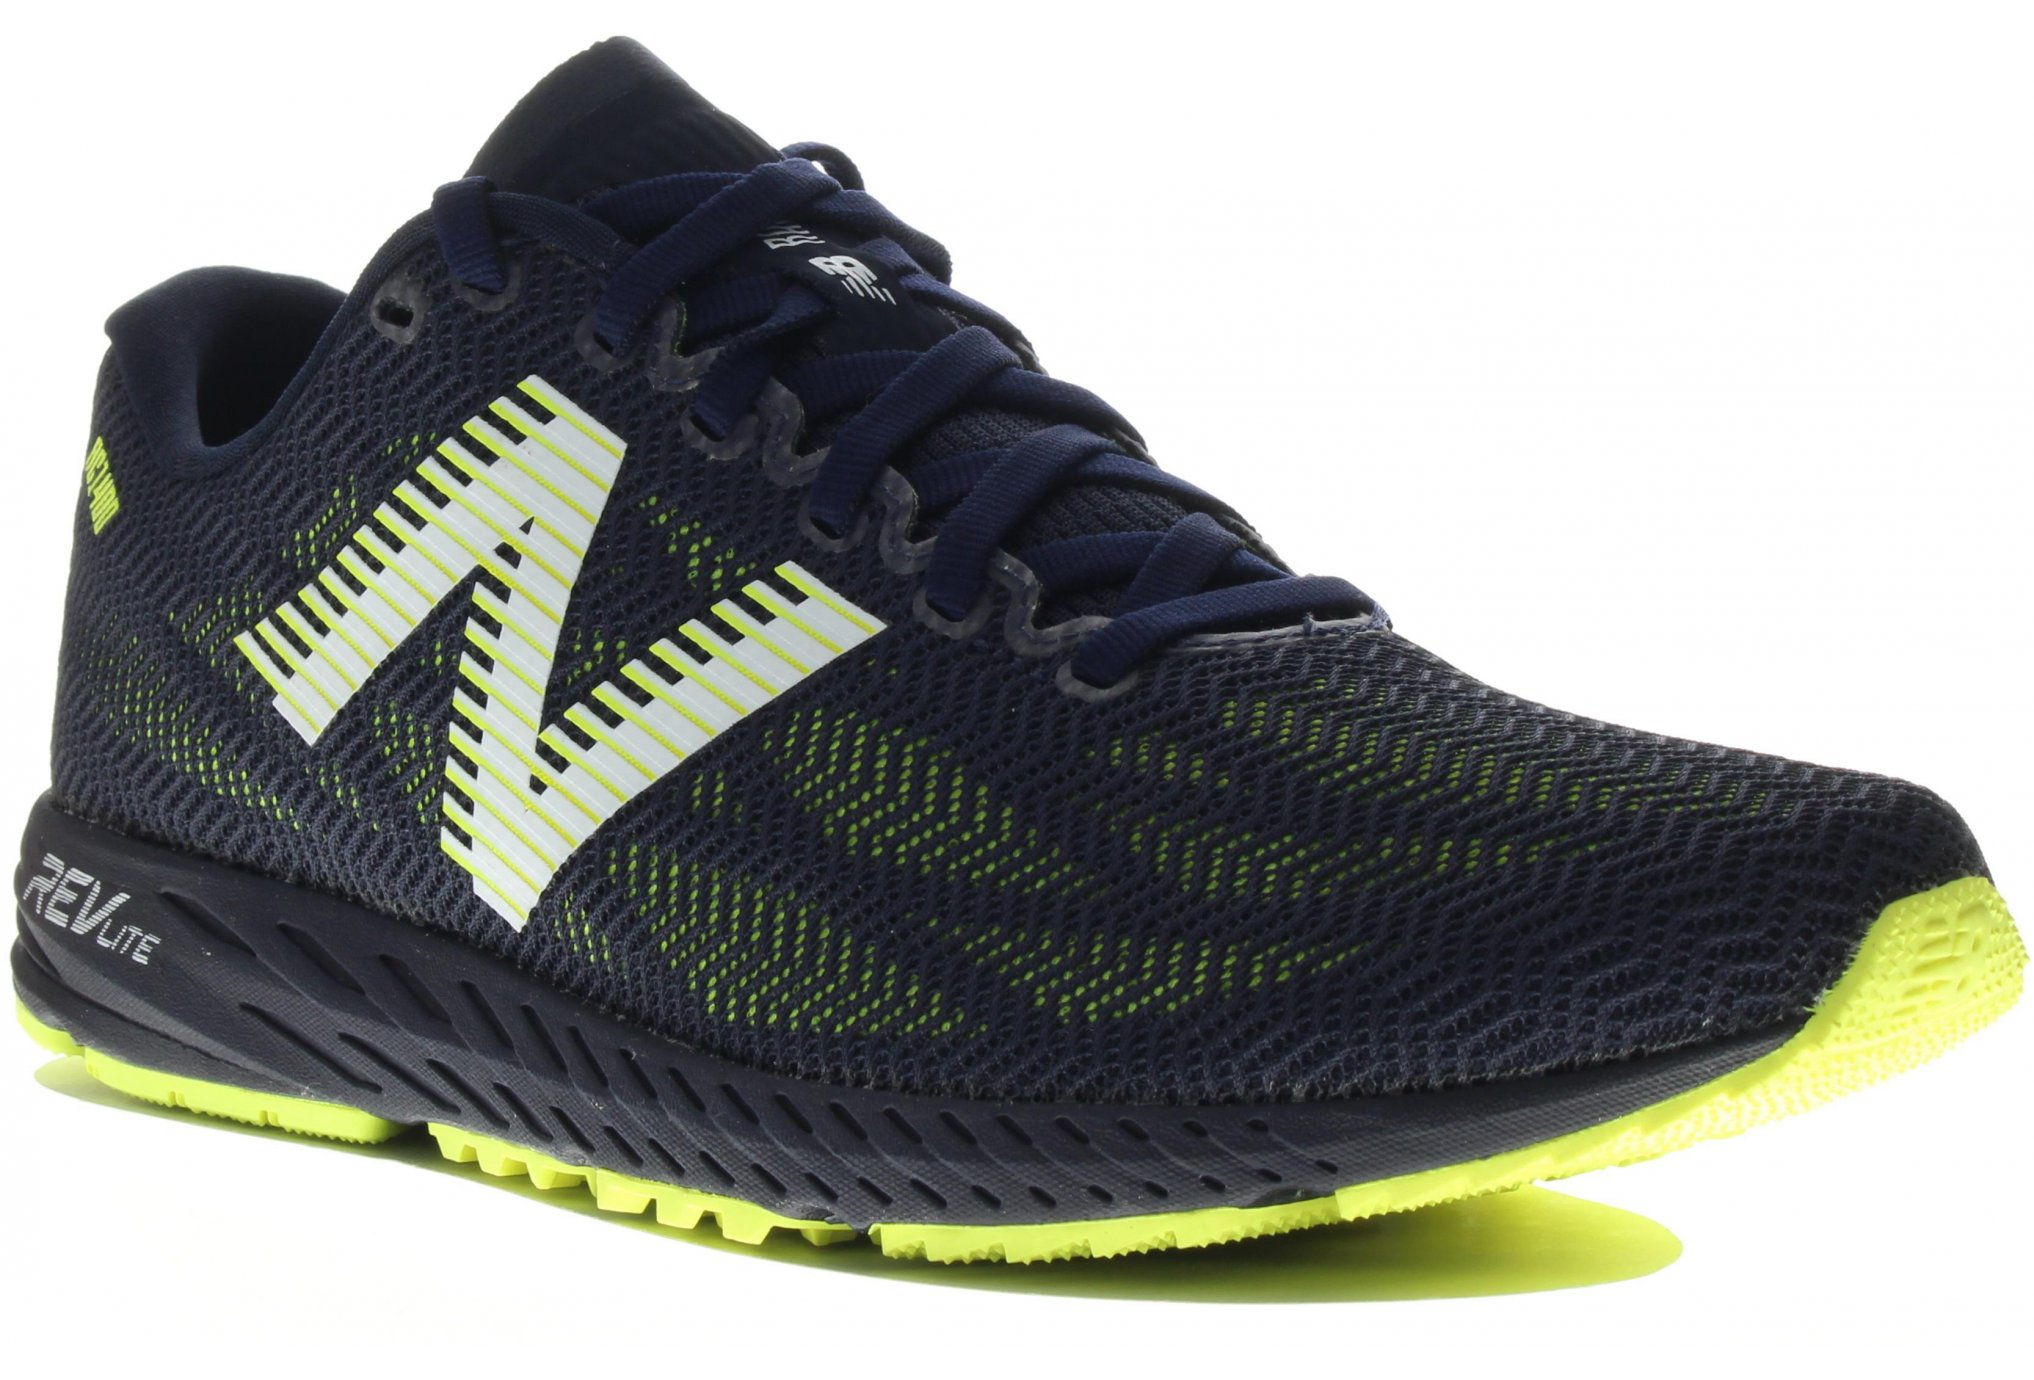 New Balance M 1400 V6 - D Chaussures homme